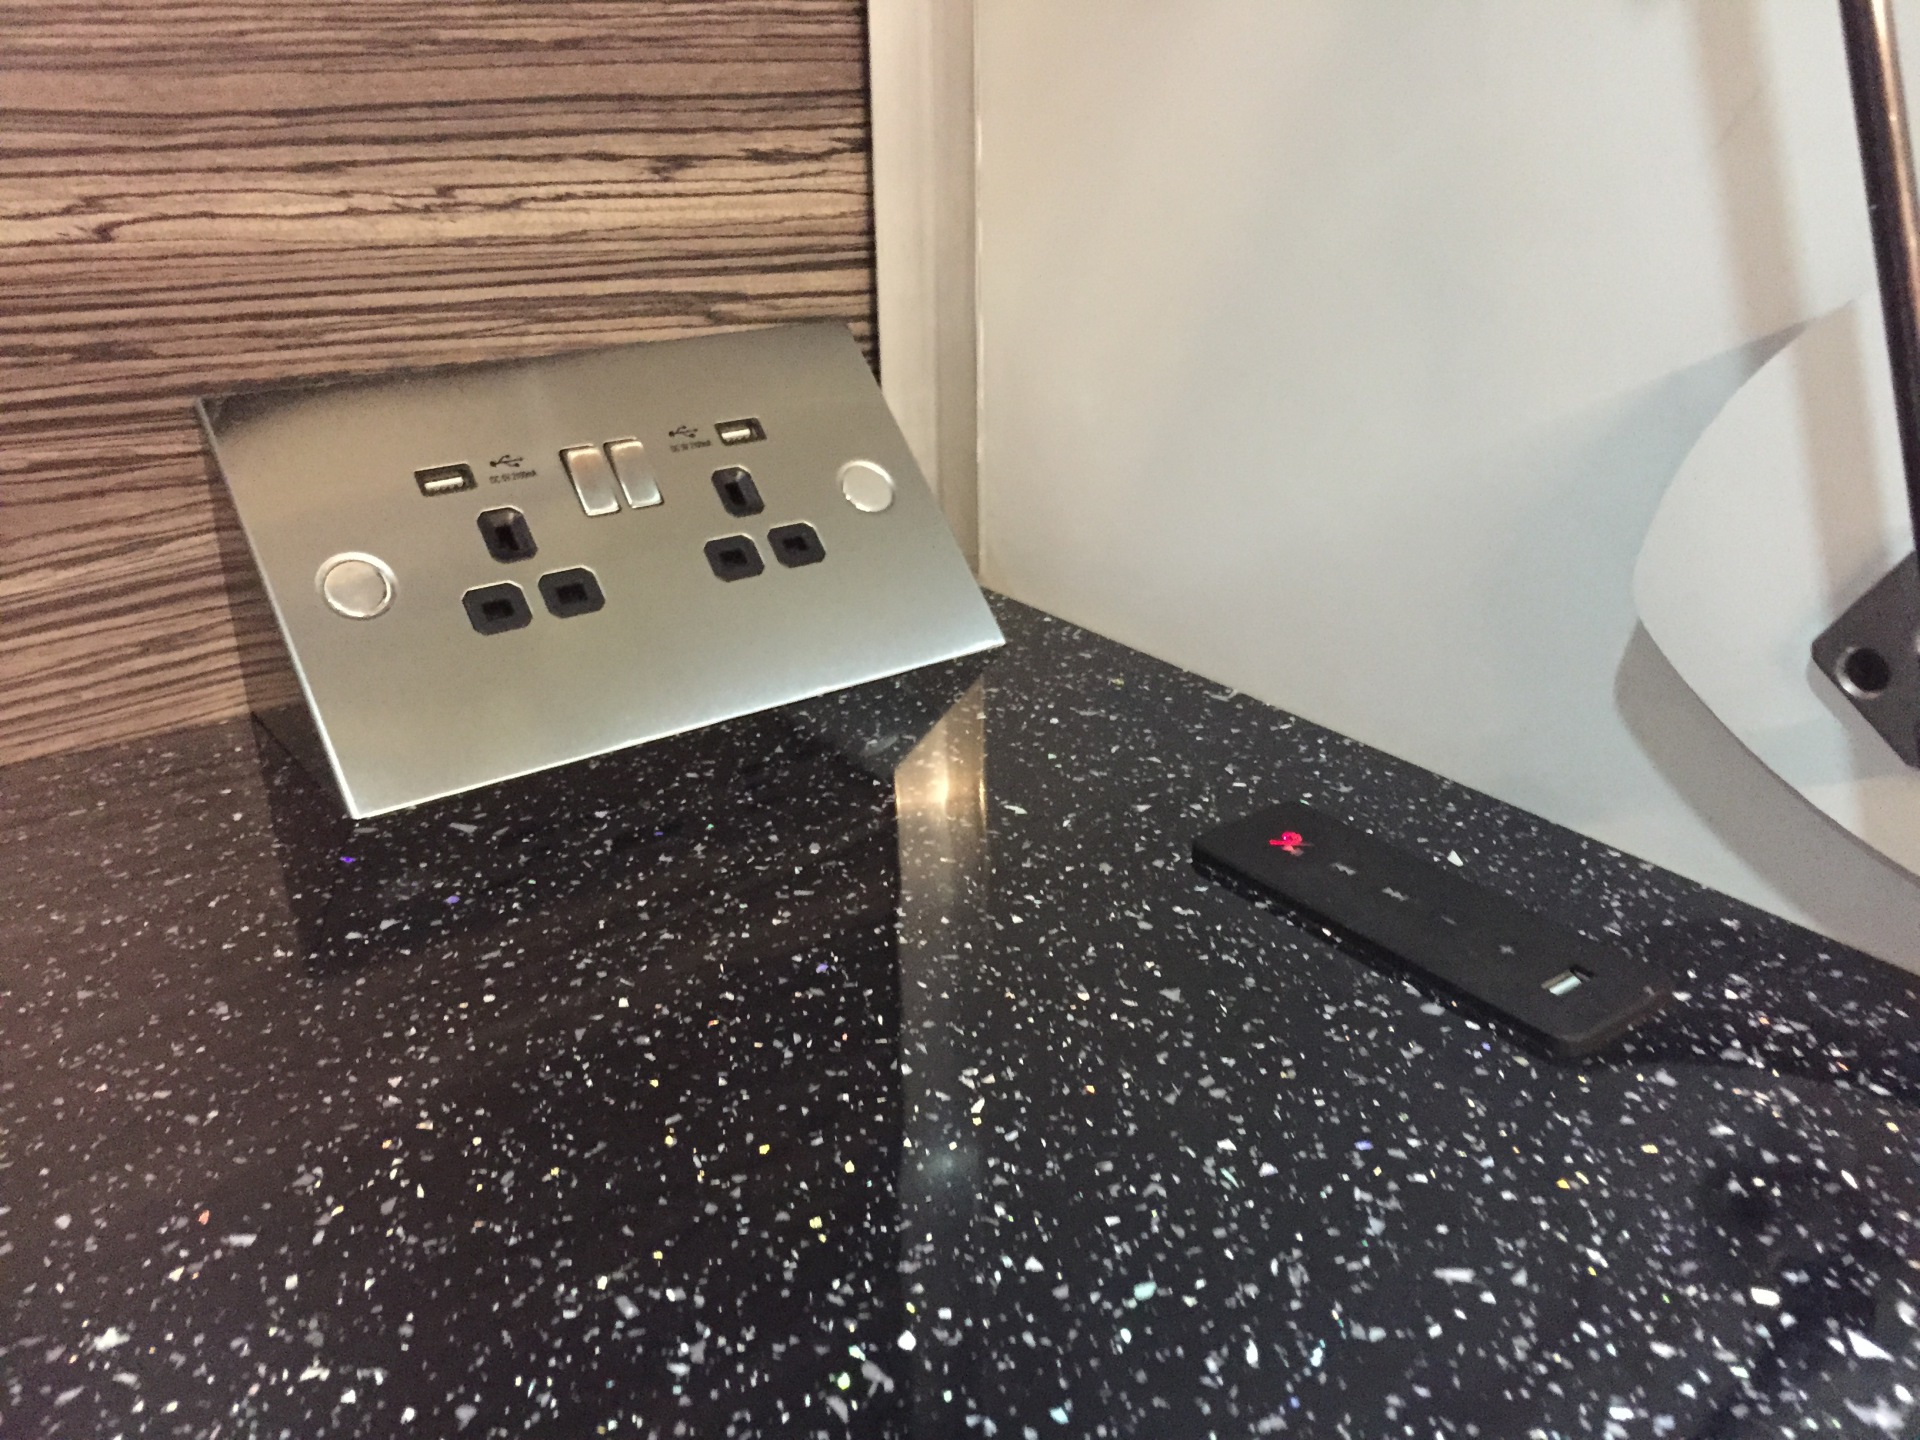 All our trailers come with double 240v socket with 2 USB sockets